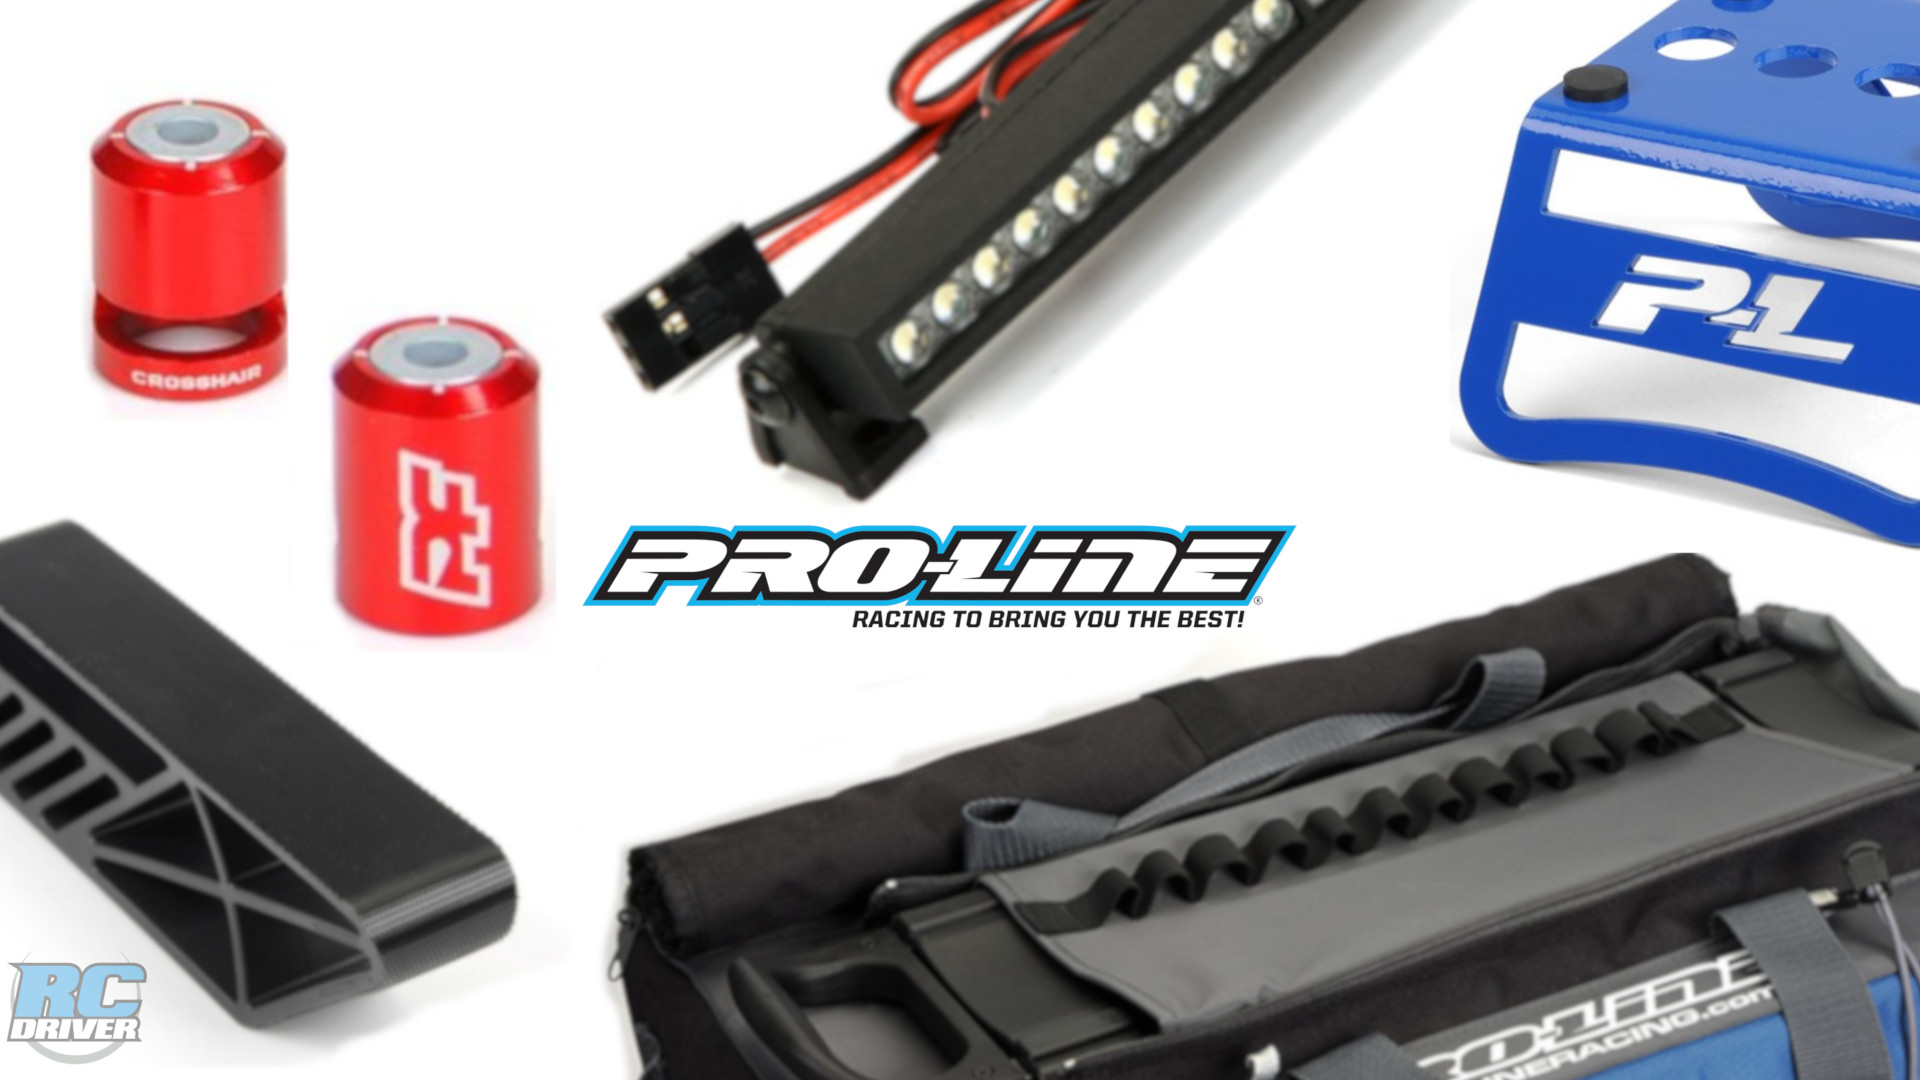 10 cool Pro-Line products that you may not know about